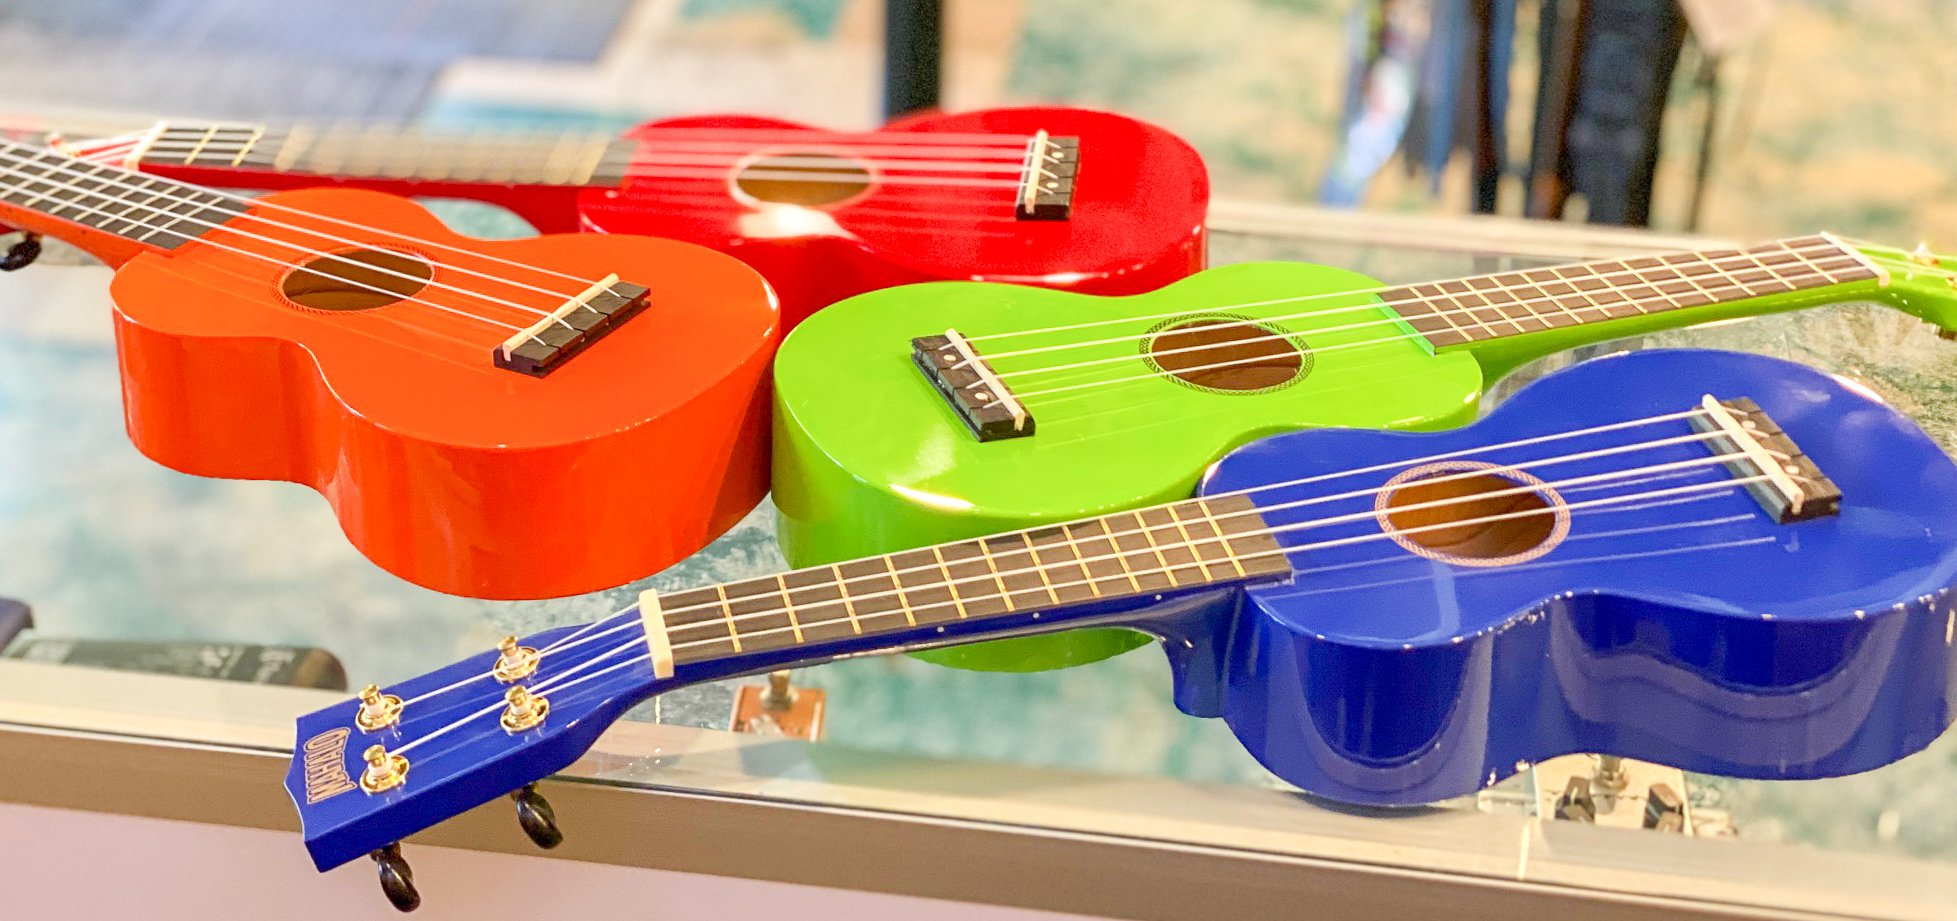 Mahalo MR1 Soprano Uke - Blue, Green, Orange, Red